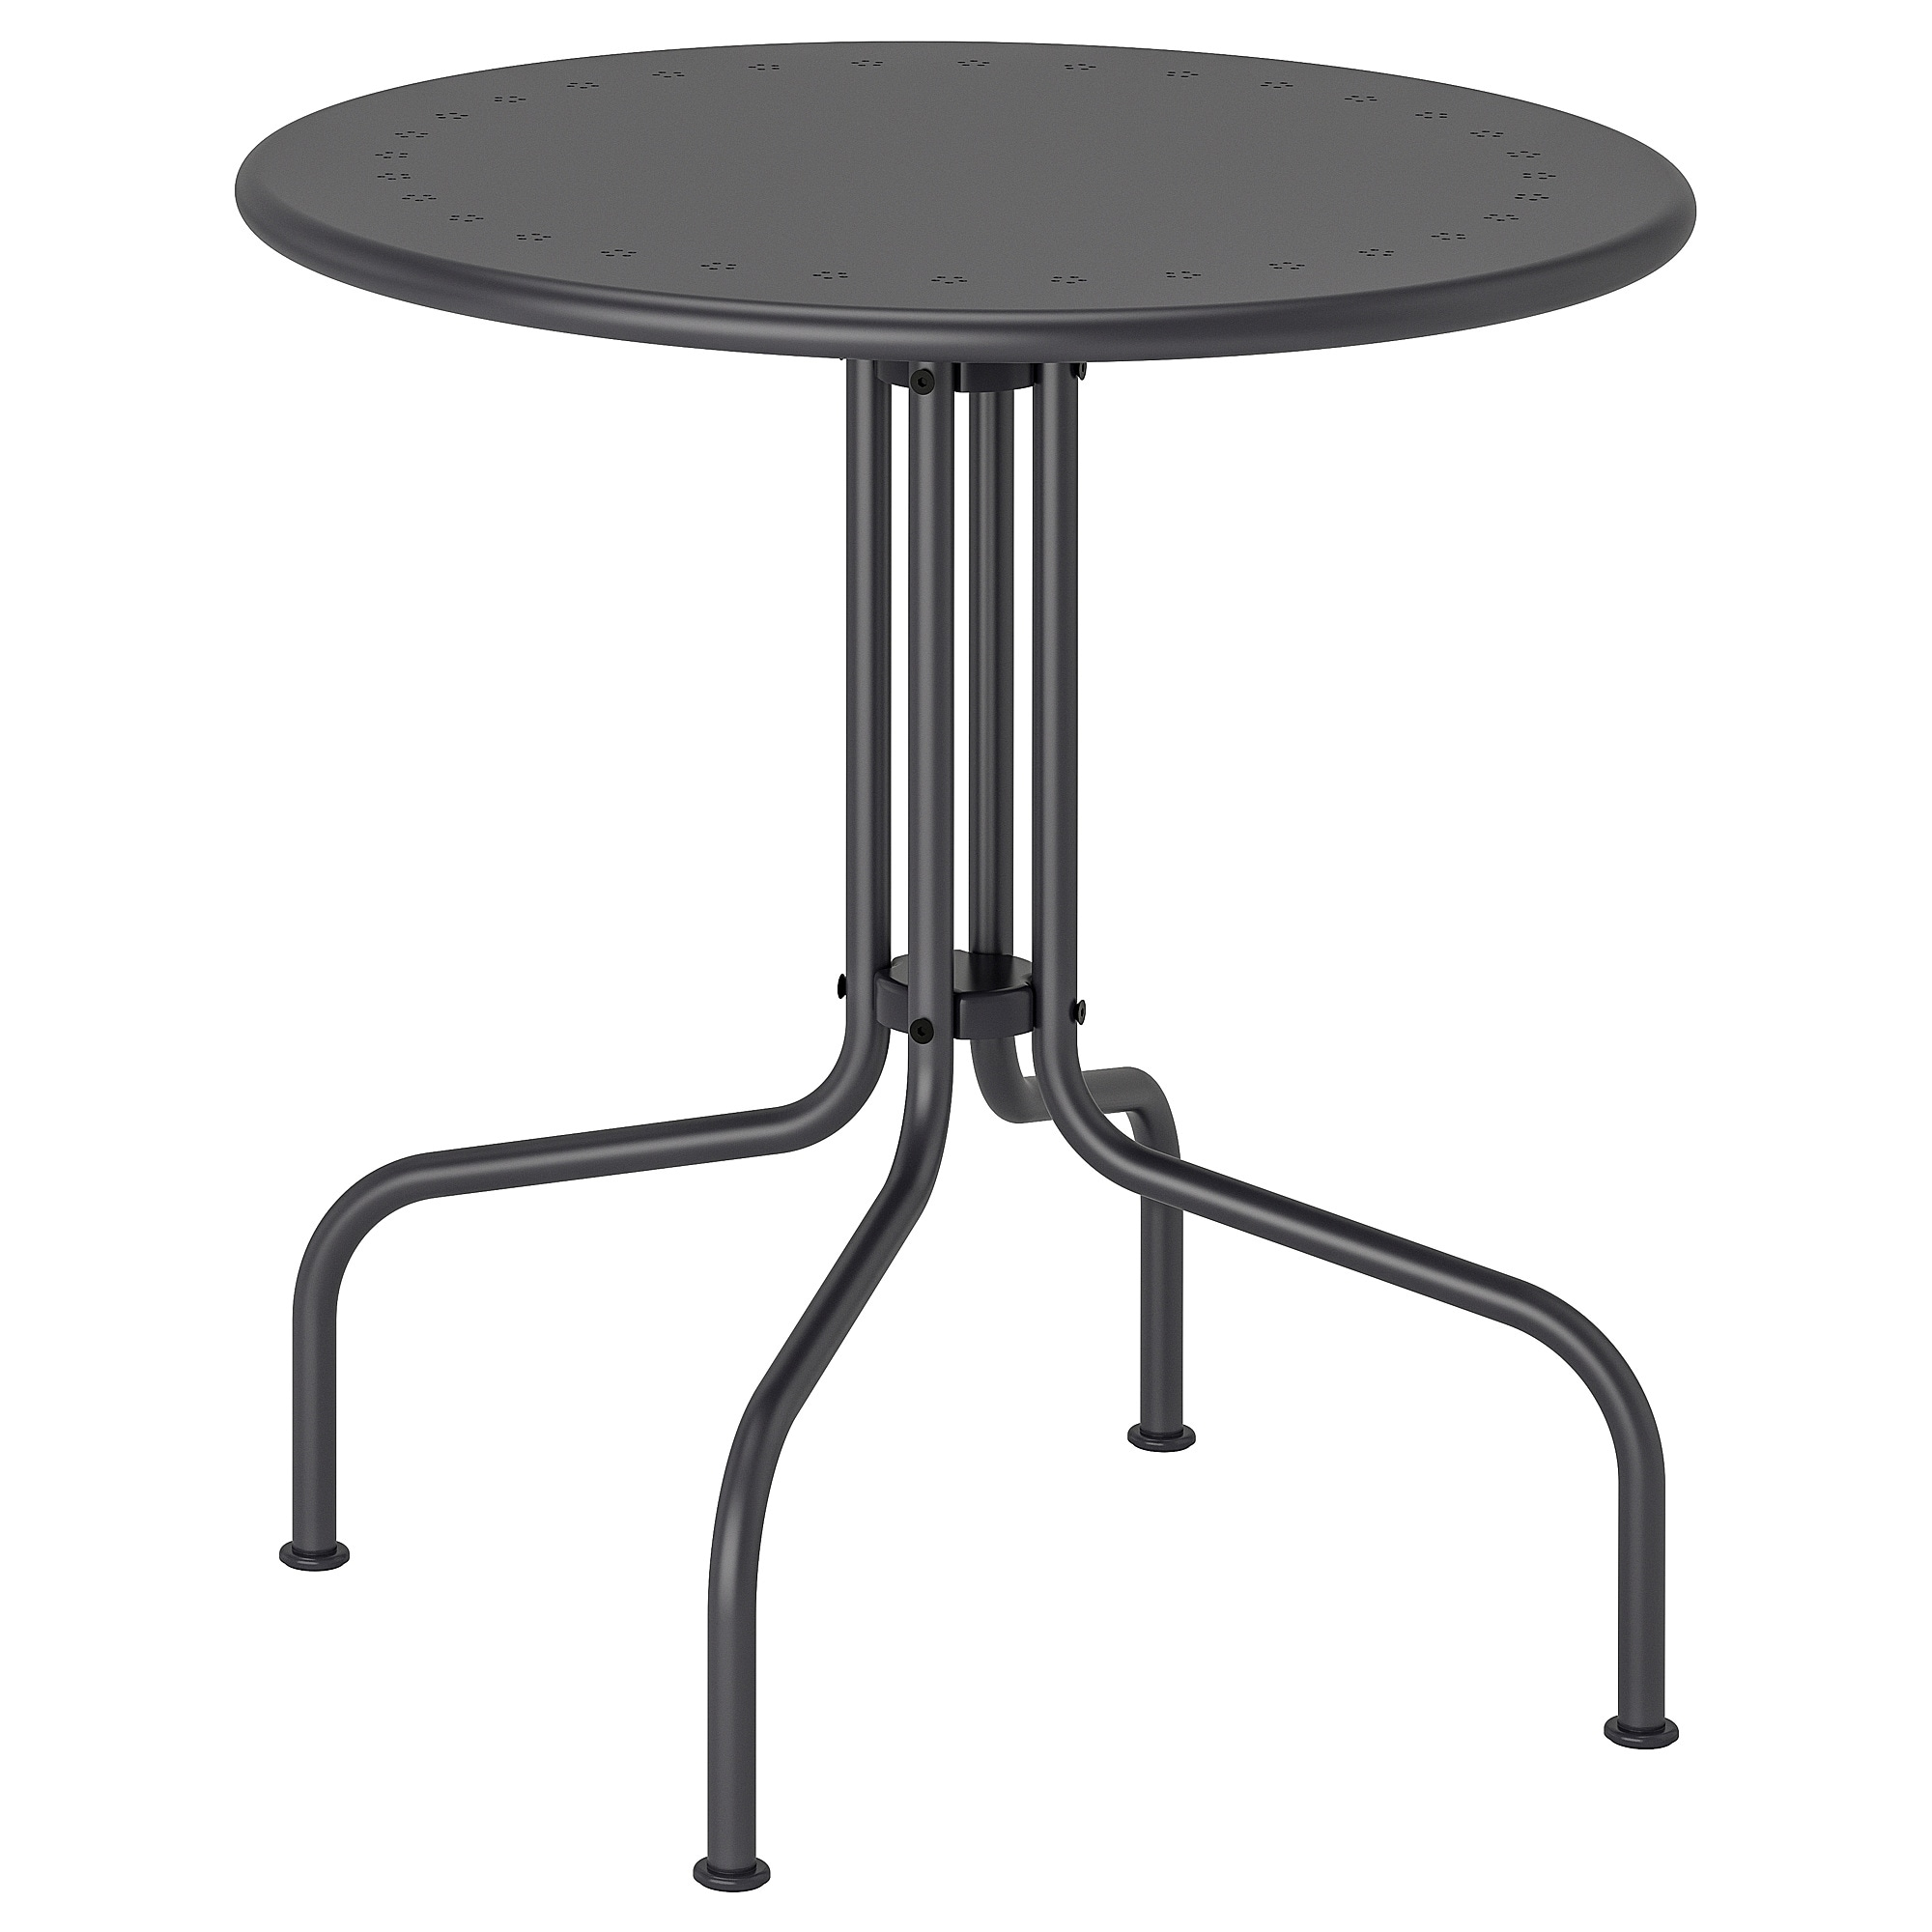 Lacko Table Outdoor Ikea